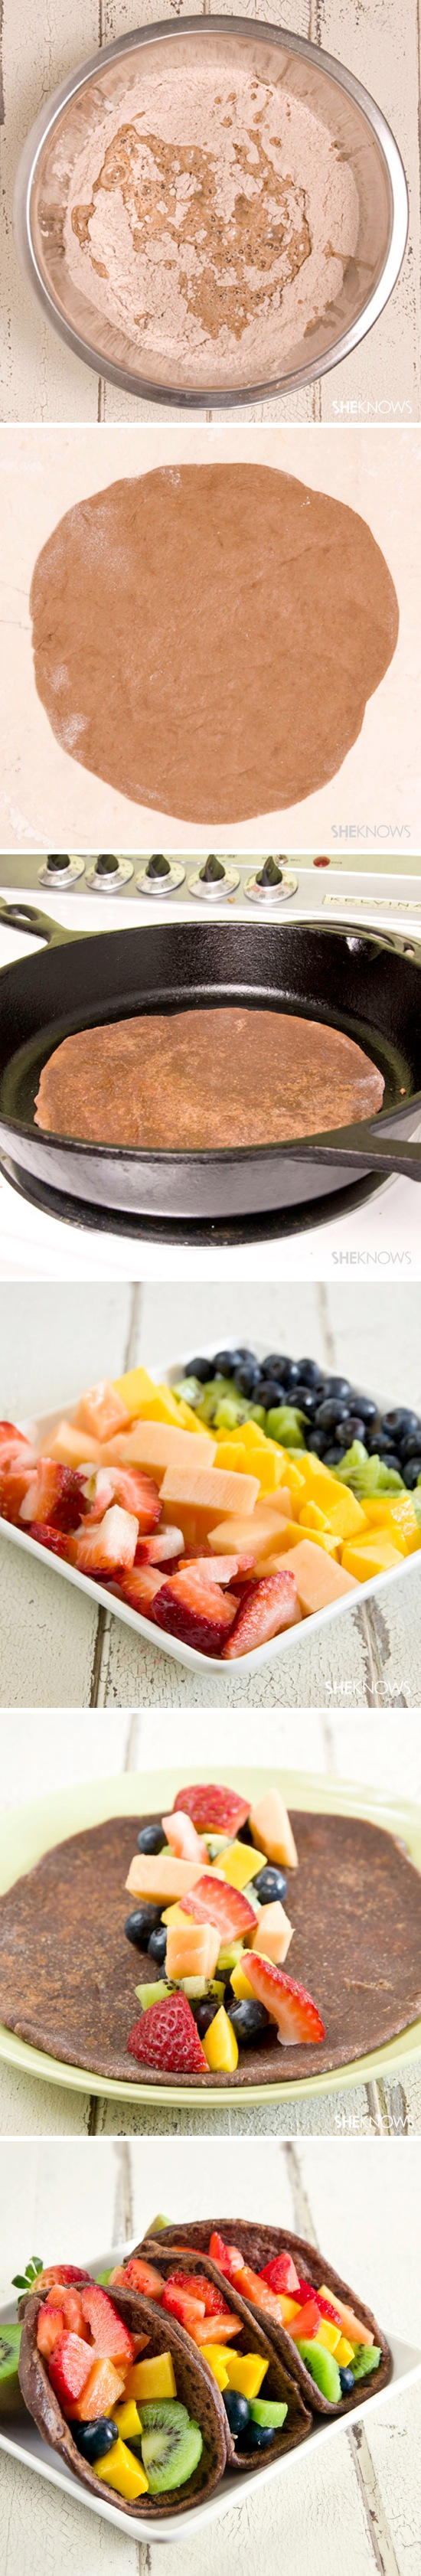 Fruit-Tacos-With-Chocolate-Tortillas